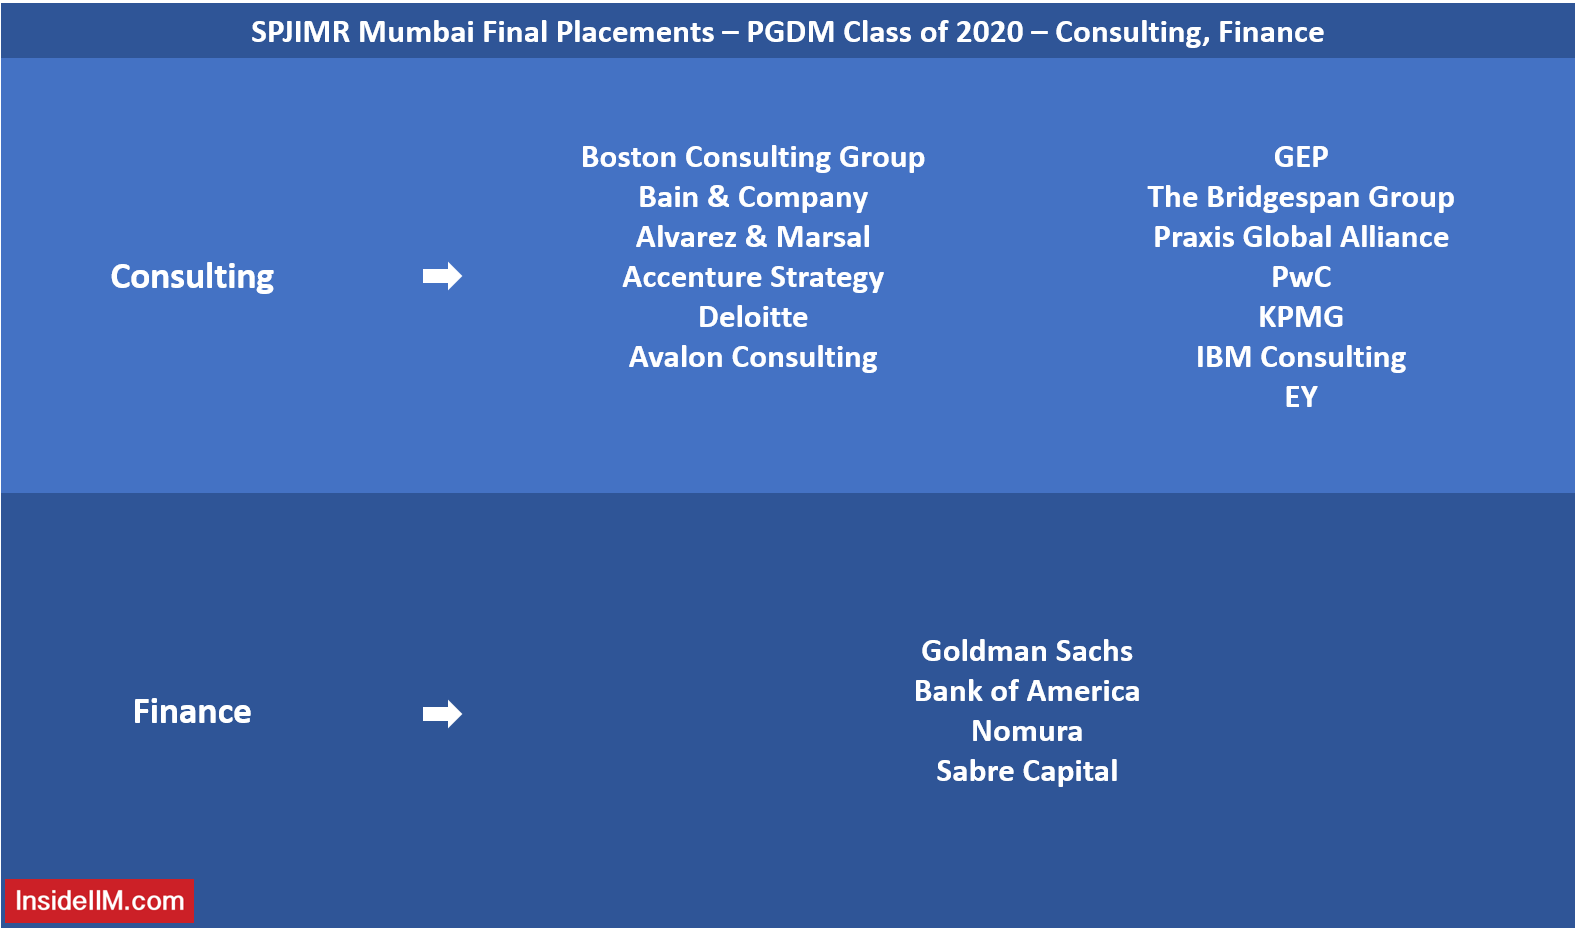 SPJIMR Final Placements - PGDM Class of 2020 - Consulting, Finance